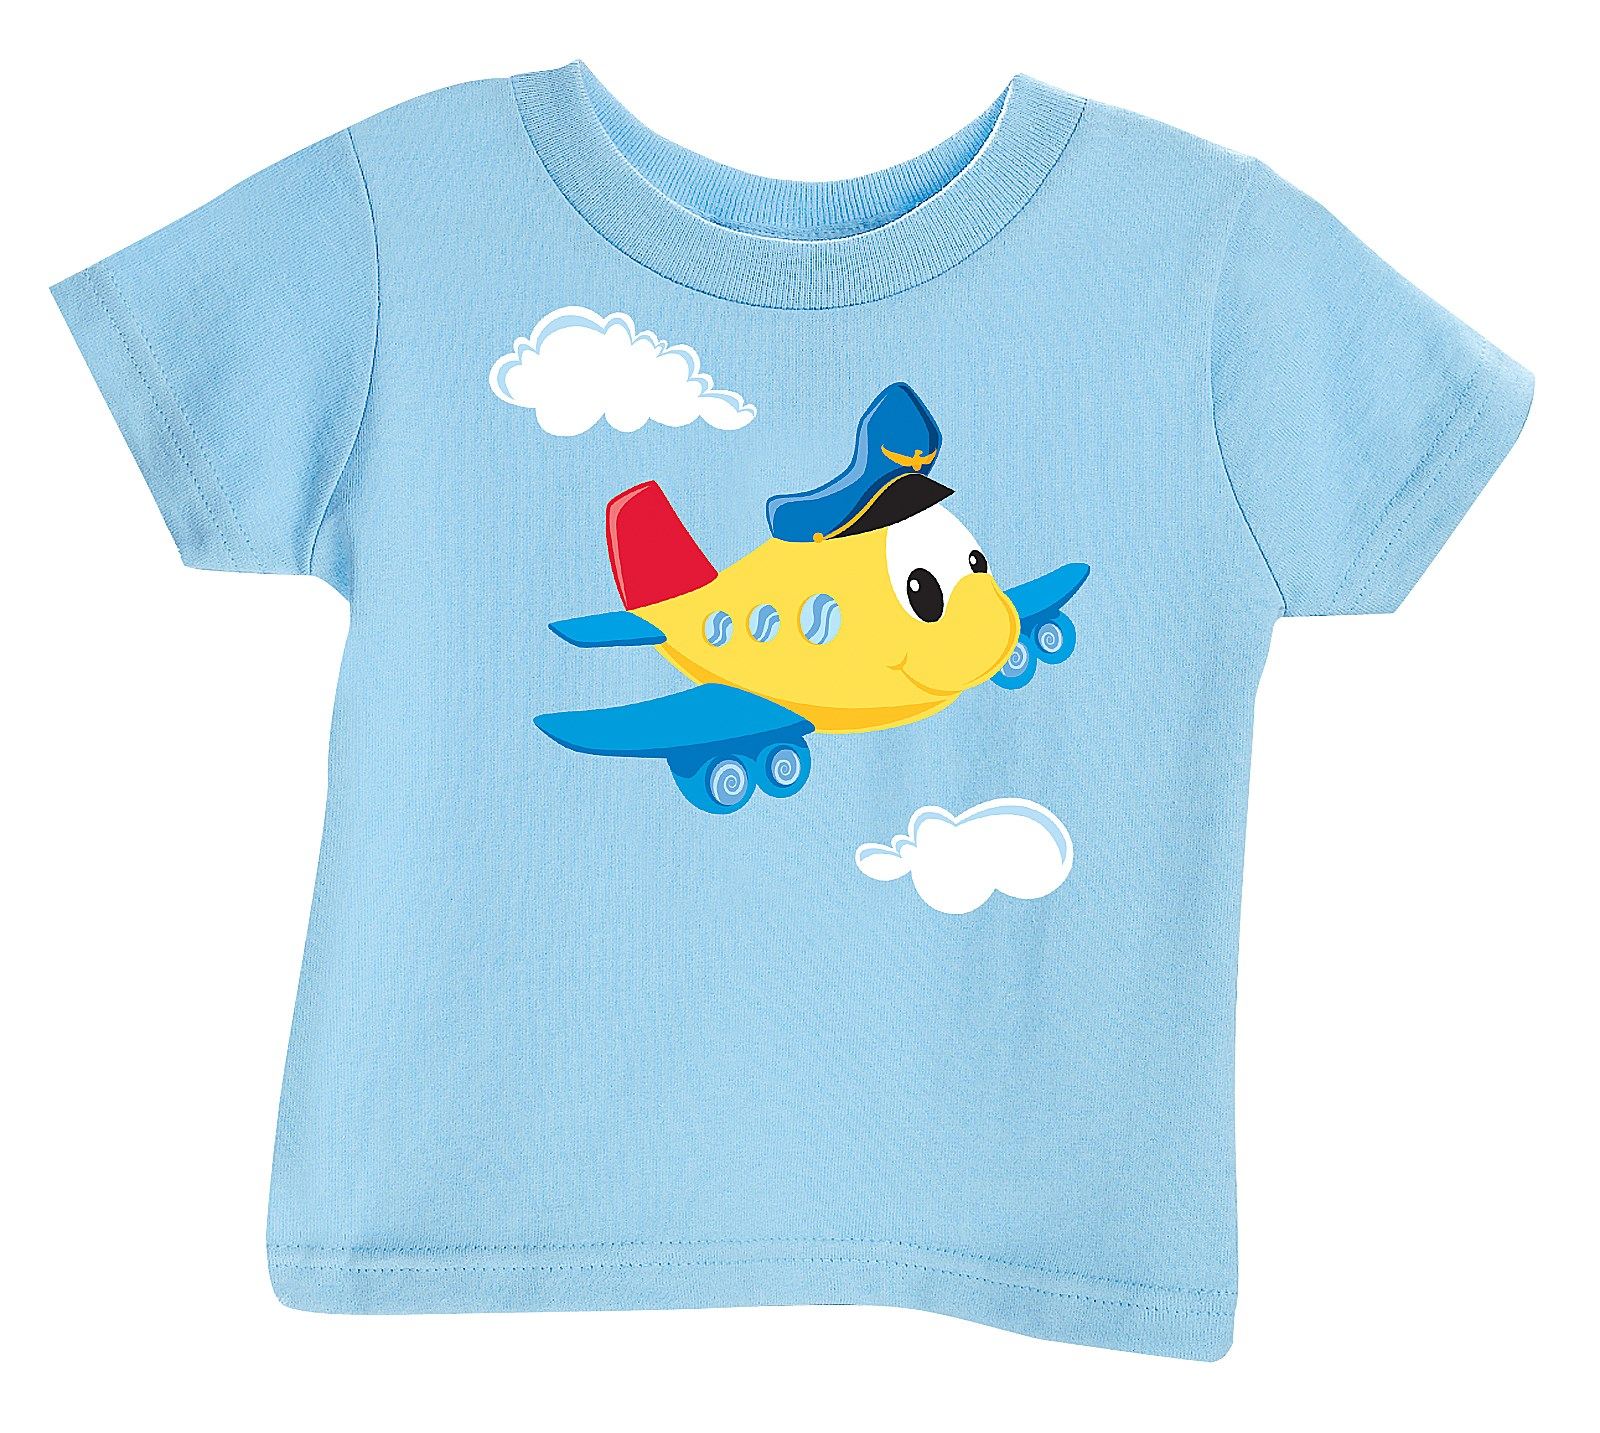 Image of Airplane Adventure T-Shirt 18 months